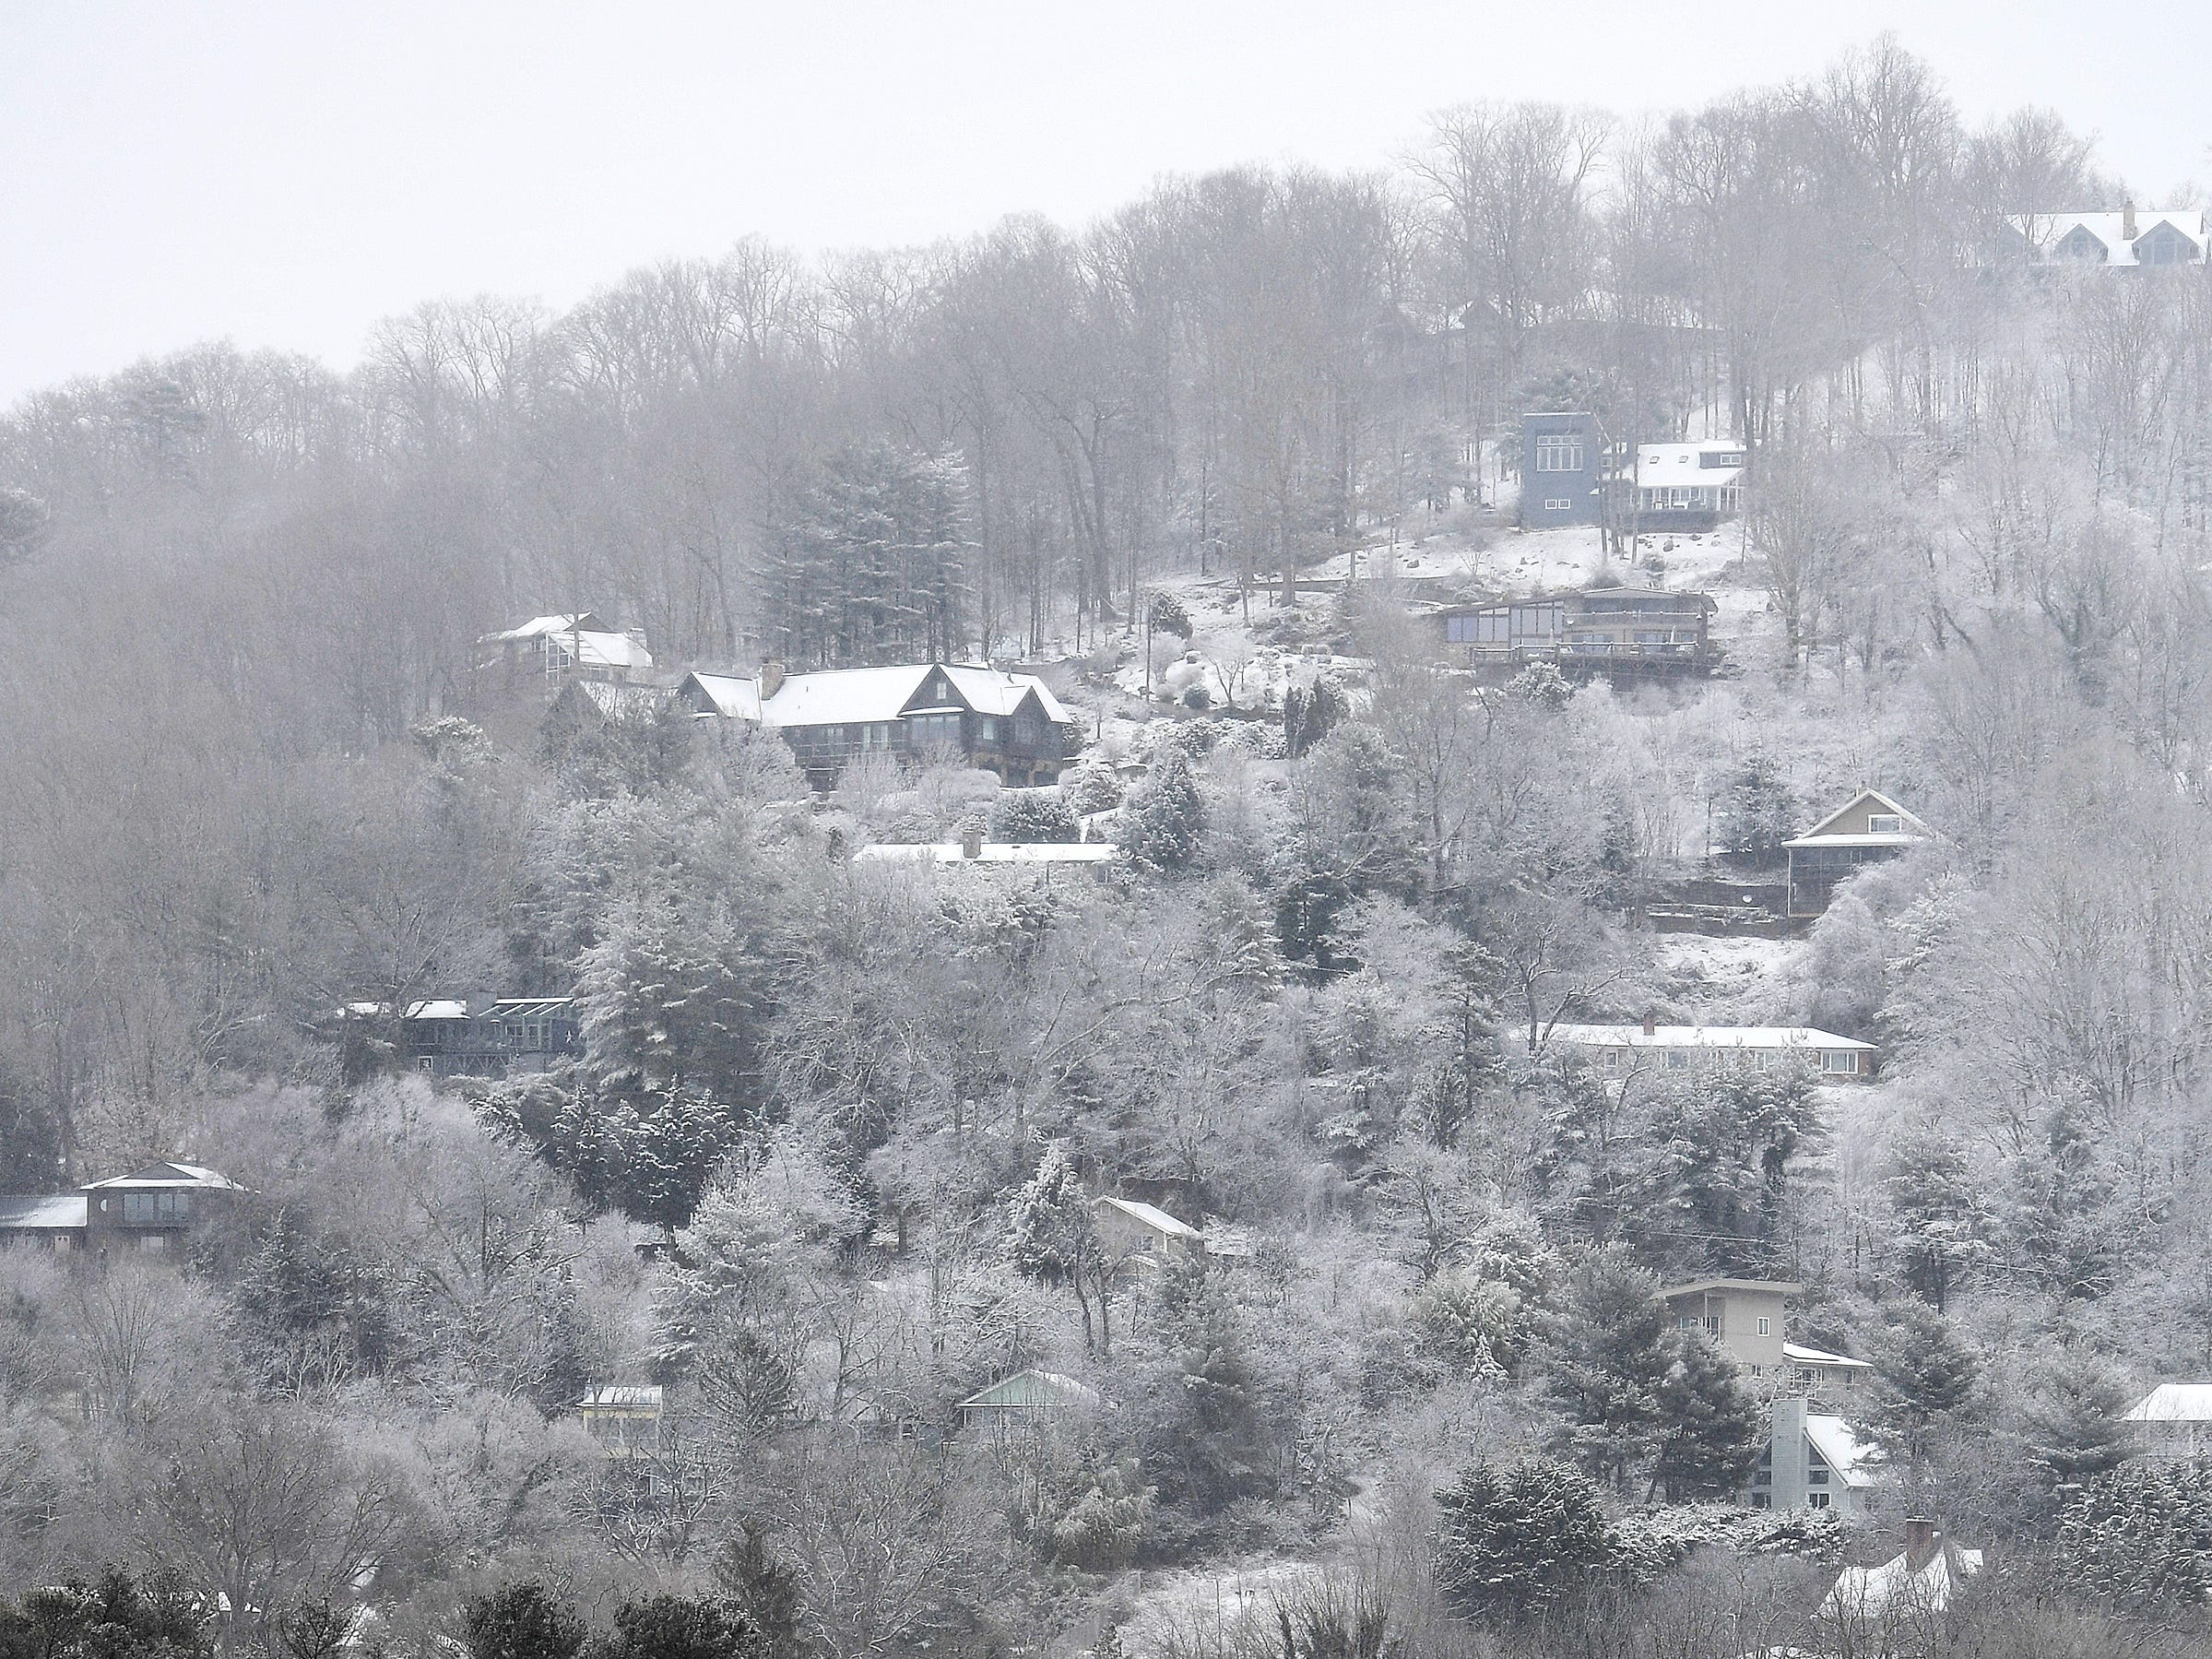 Higher elevations are blanketed in snow as downtown Asheville receives a dusting on Jan. 29, 2019. The forecast predicts up to three inches of snow and icy road conditions.